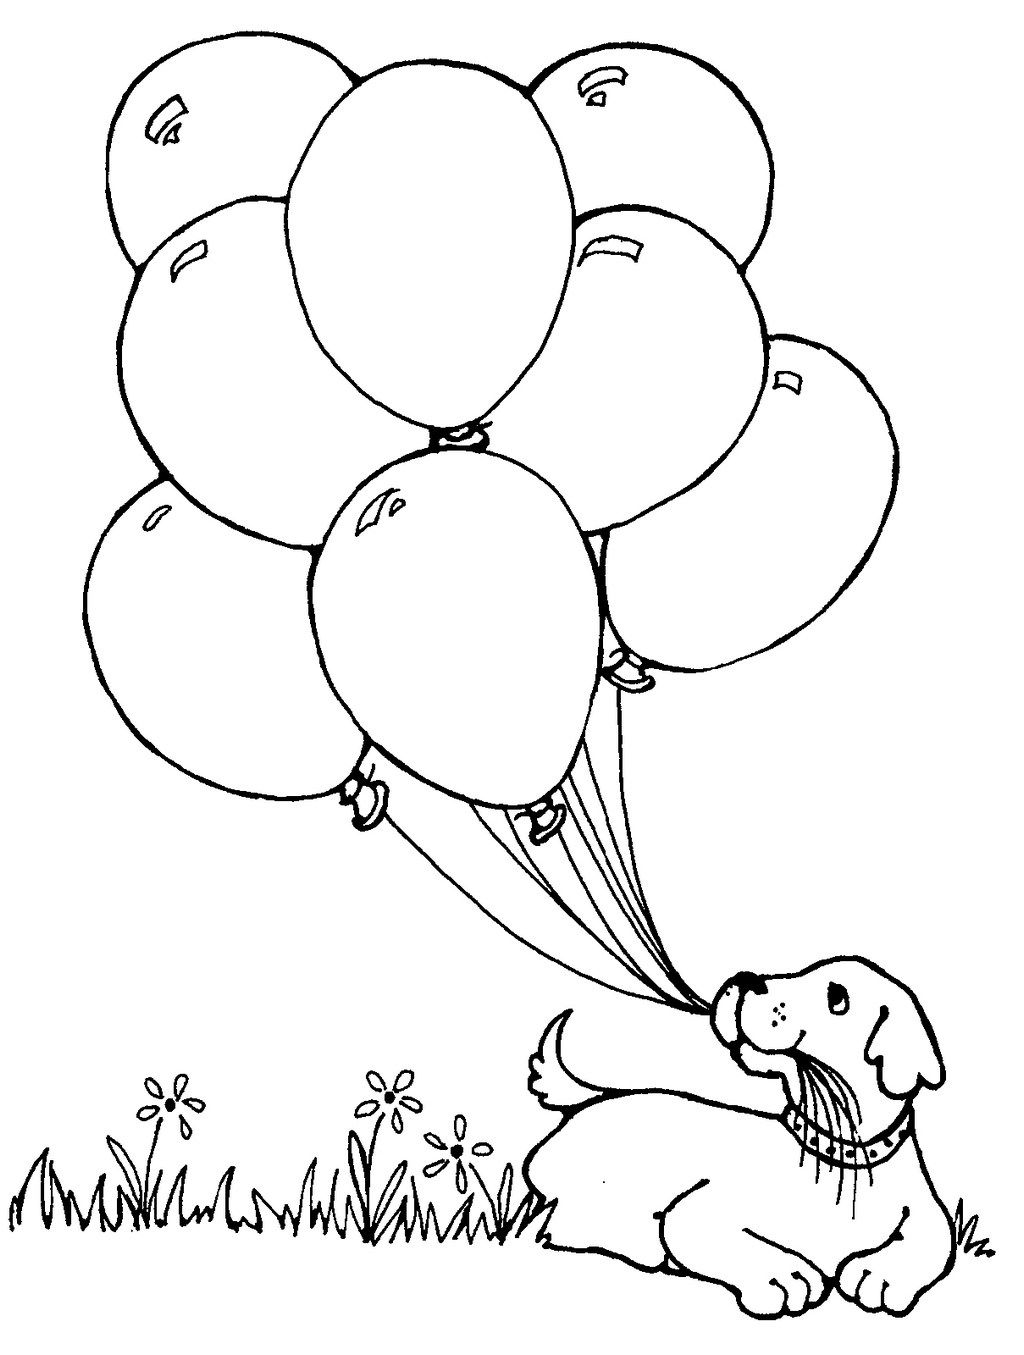 It is a graphic of Hot Air Balloon Coloring Pages Free Printable with labeled